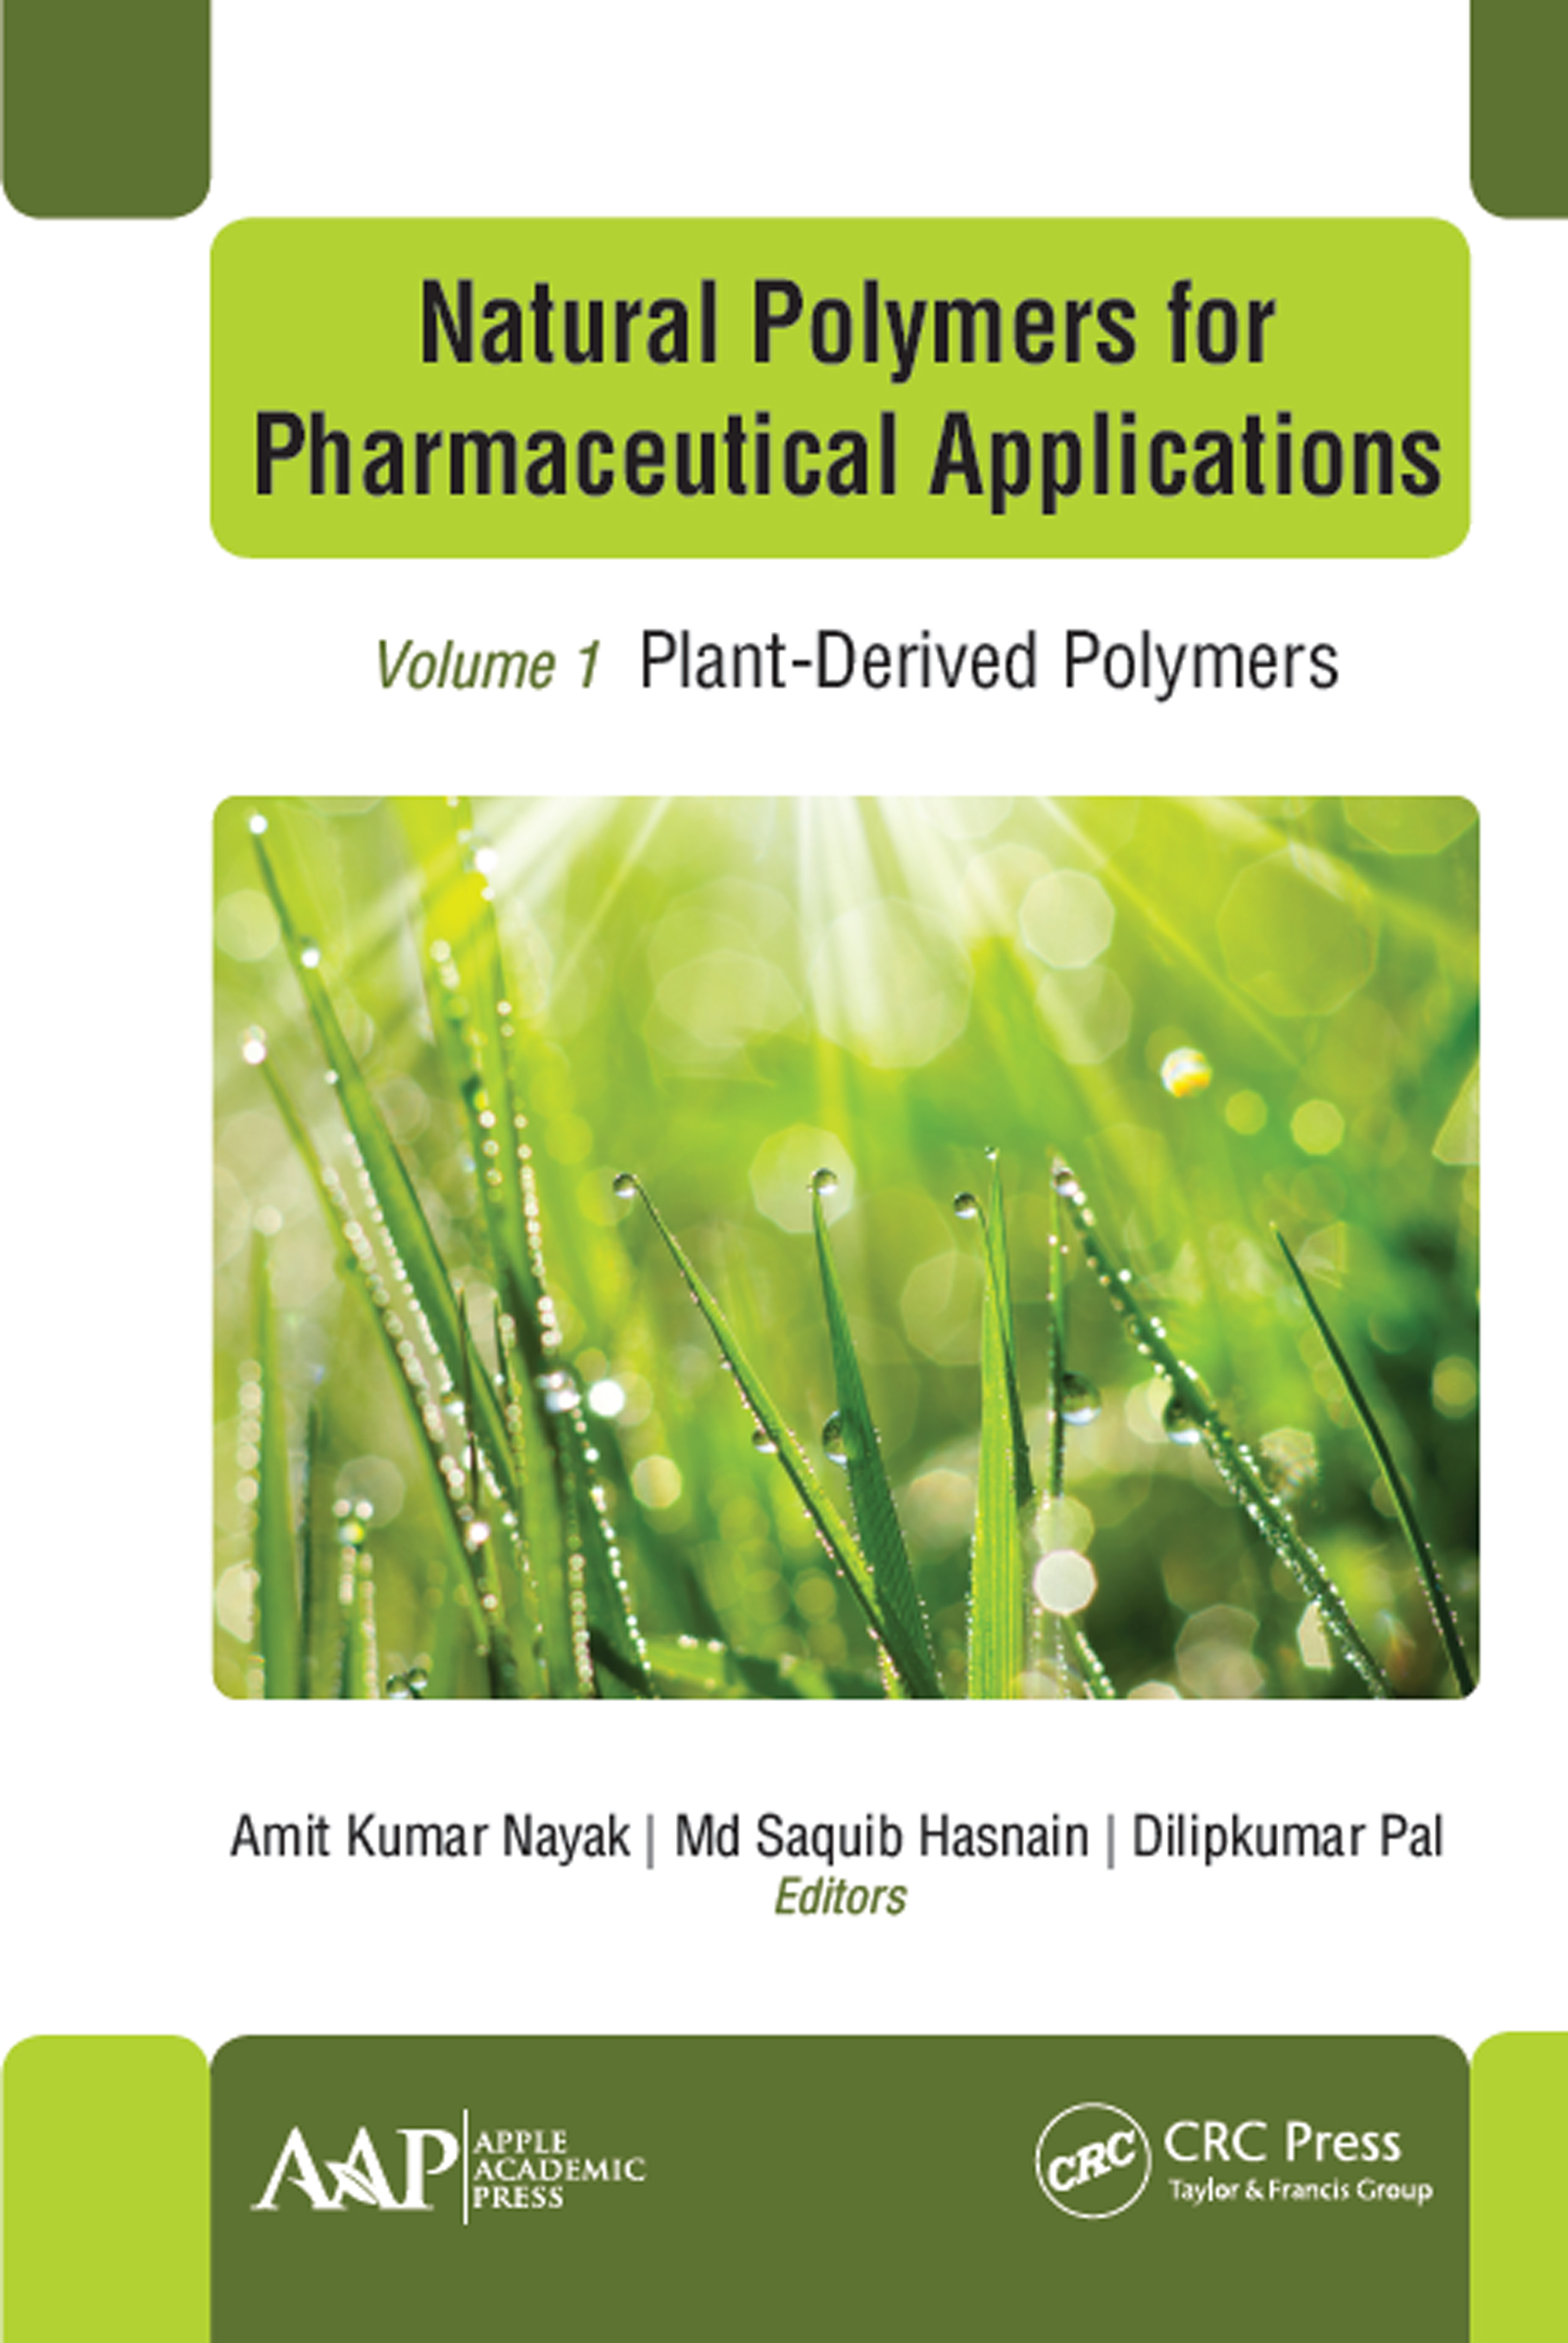 Natural Polymers for Pharmaceutical Applications: Volume 1: Plant-Derived Polymers book cover